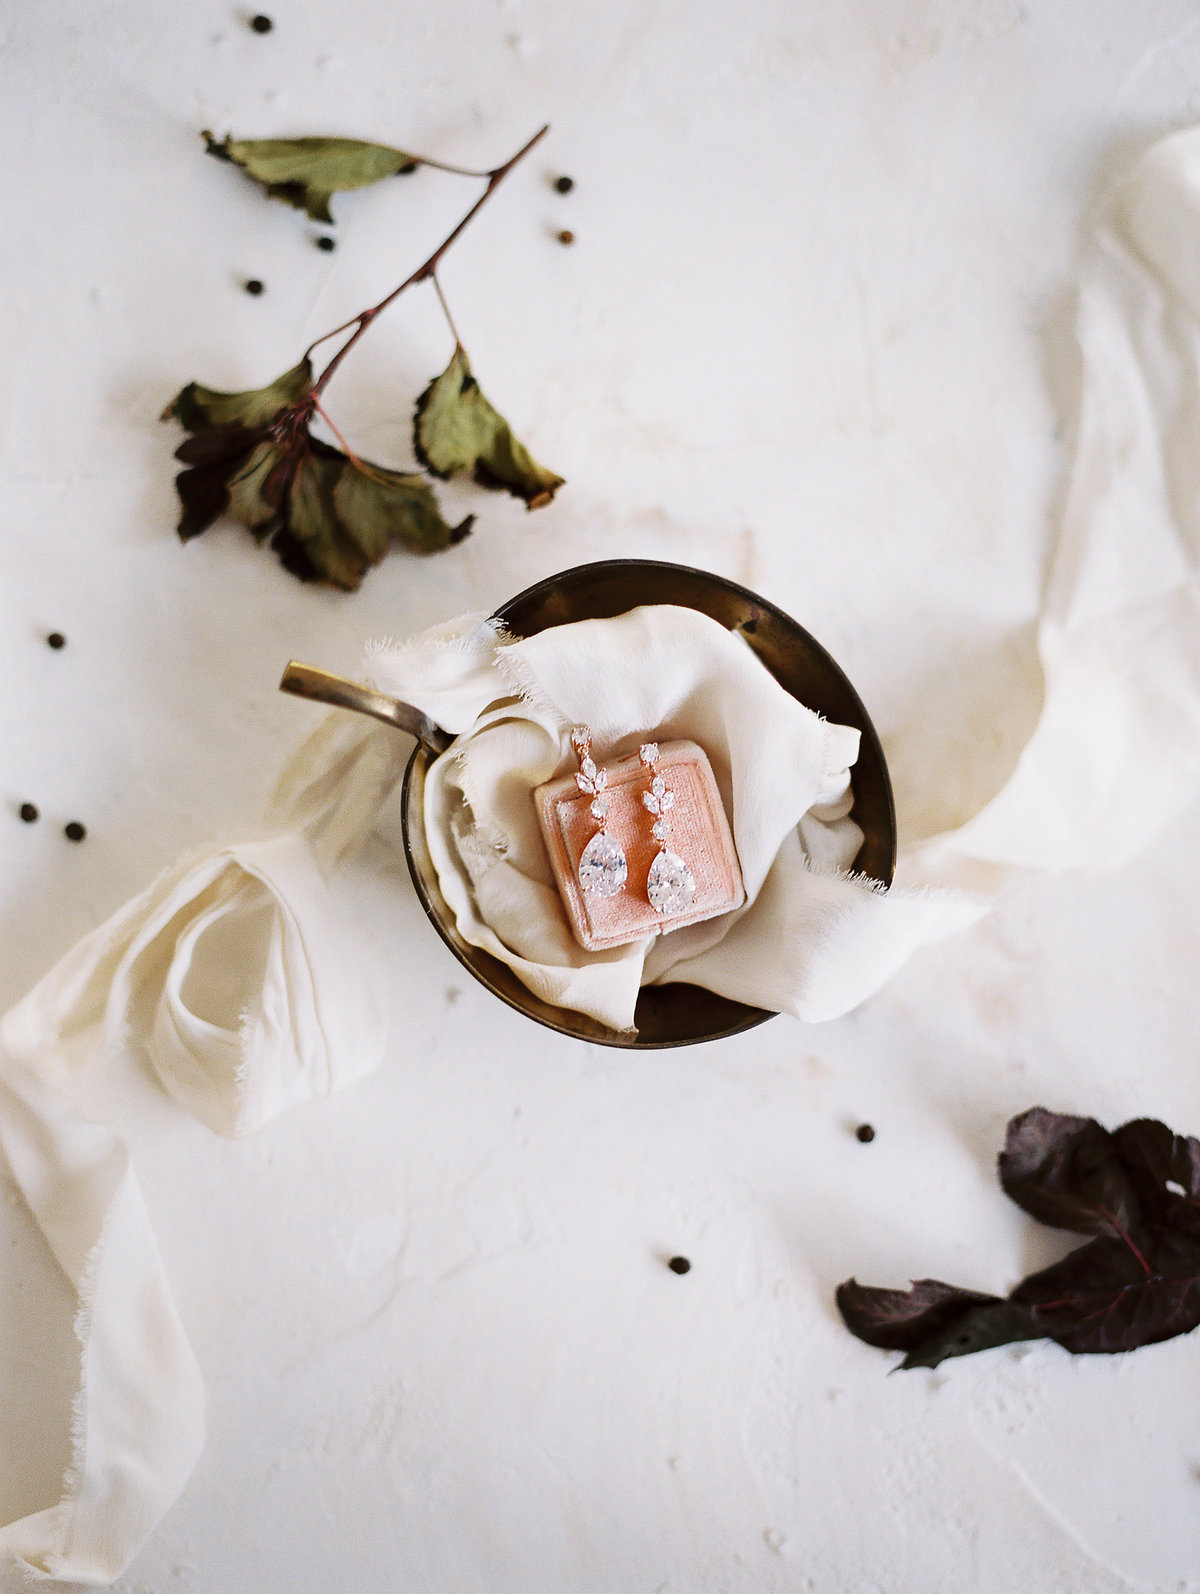 Copy of WHEN-SHE-KNEW-PHOTOGRAPHY-STYLED-WEDDING-EDITORIAL-OREGON-127